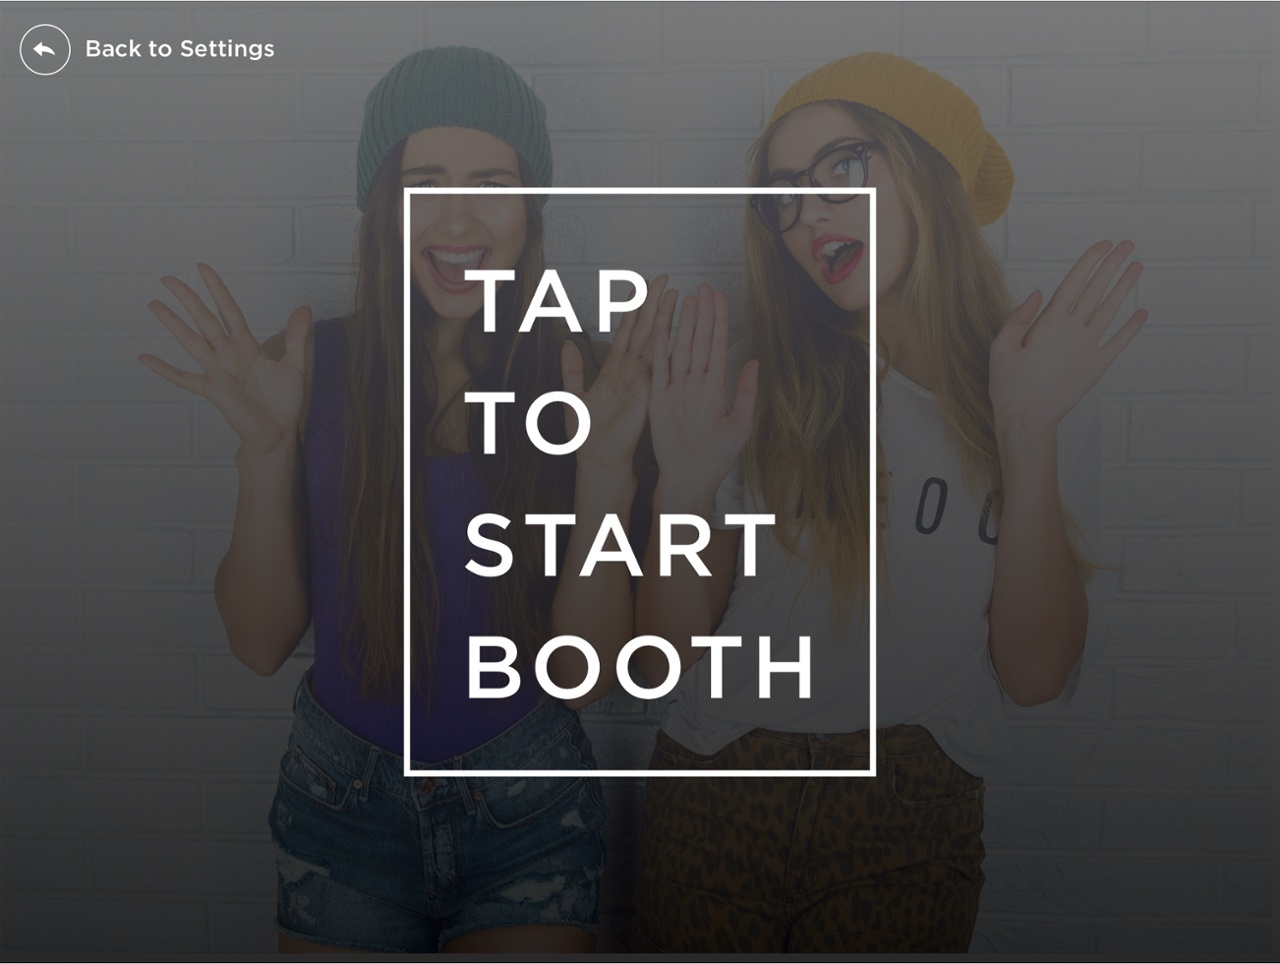 Simple Booth Tap to Start screen